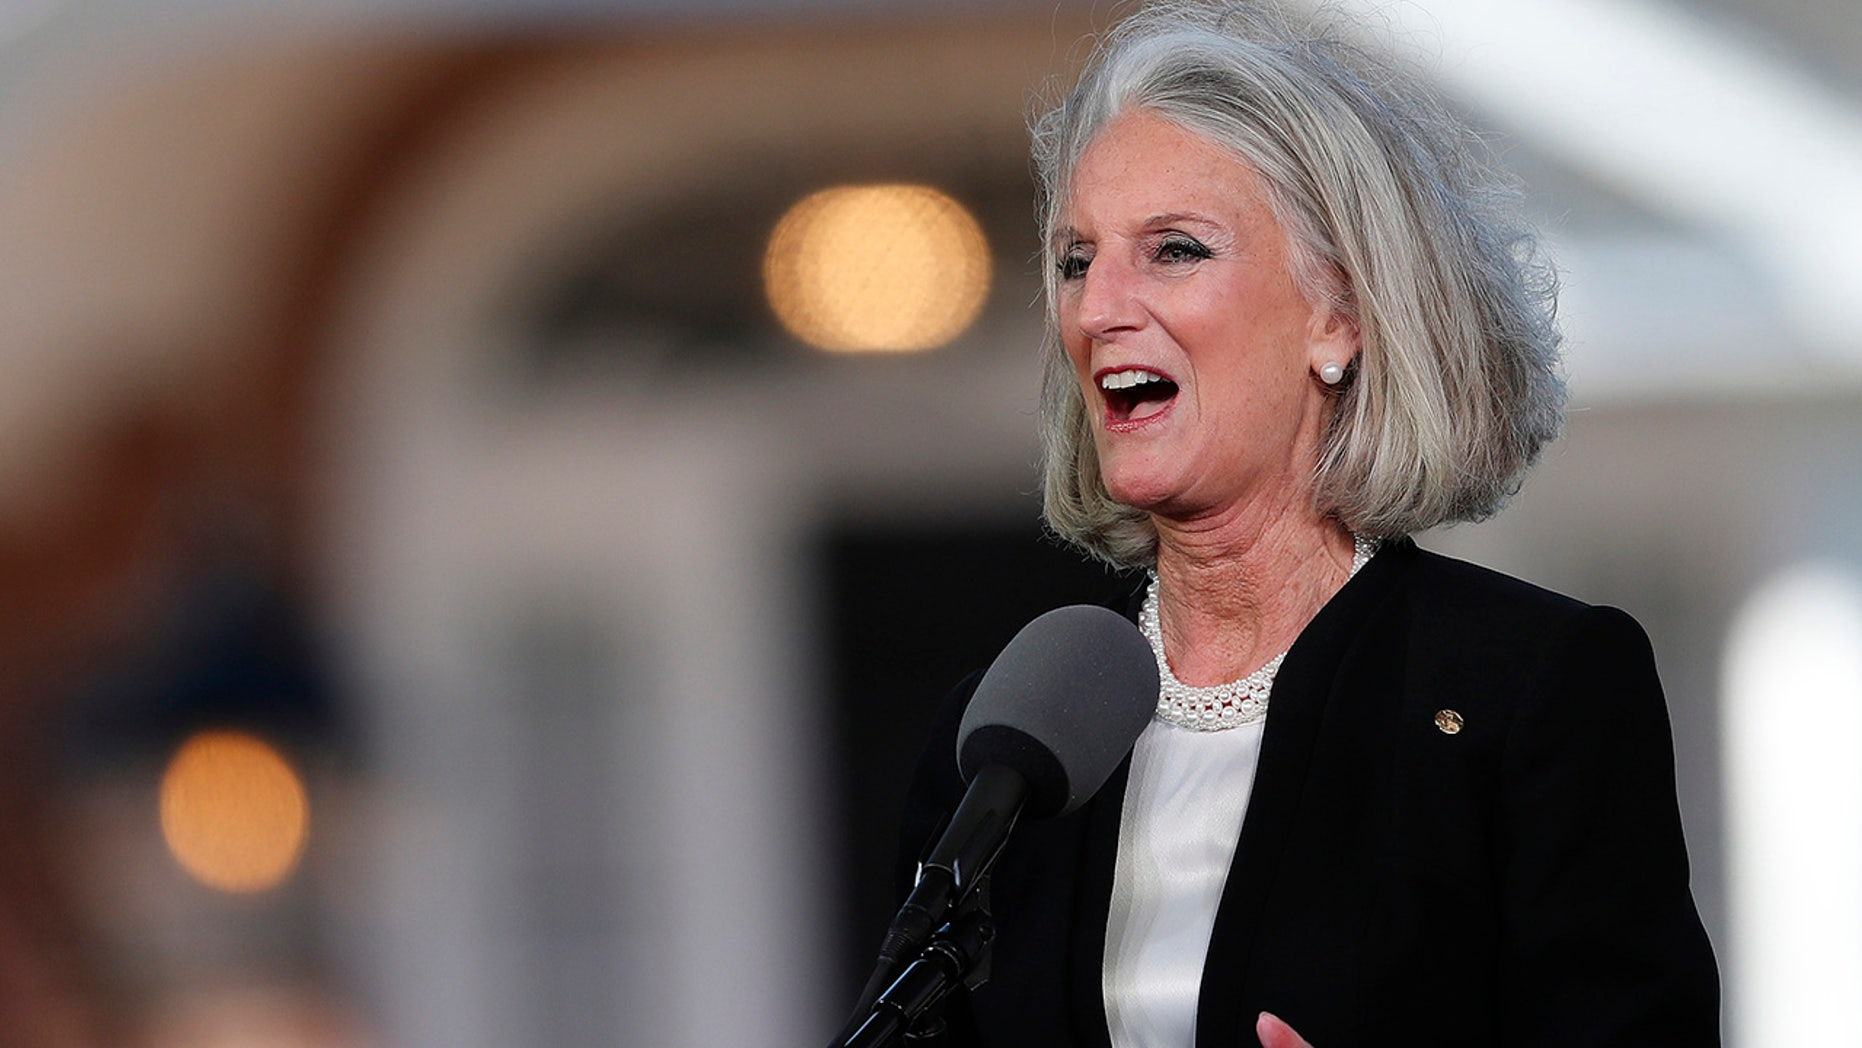 Anne Graham Lotz said in a post on her website that she was diagnosed with breast cancer in August.